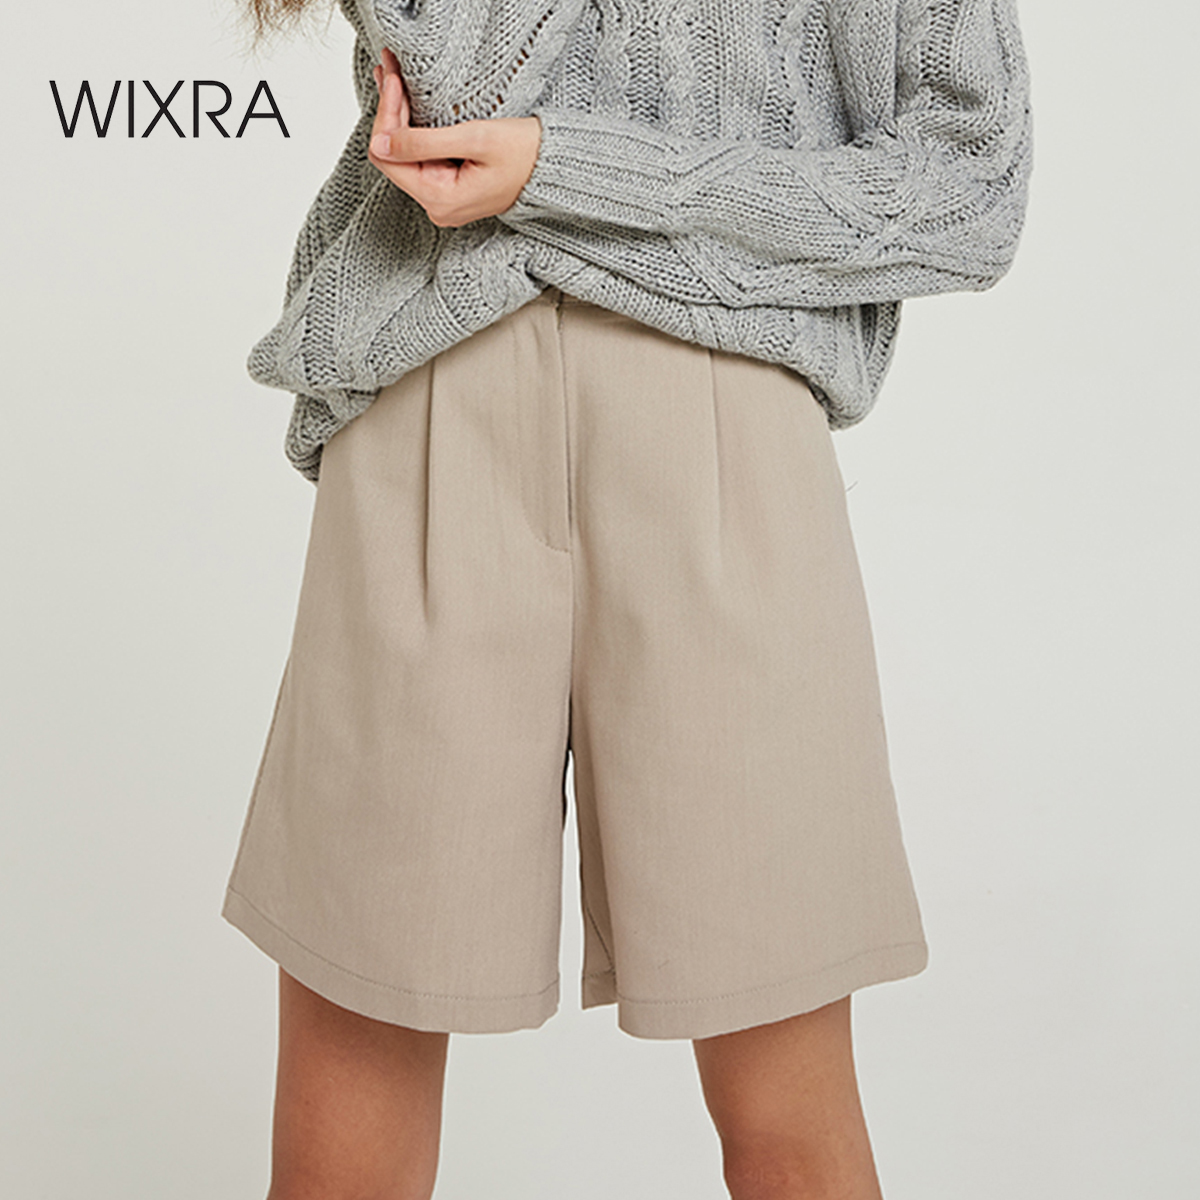 Wixra 2019 New Solid Casual Women's Shorts High Waist Pockets Summer Shorts All Base Match Ladies Bottom